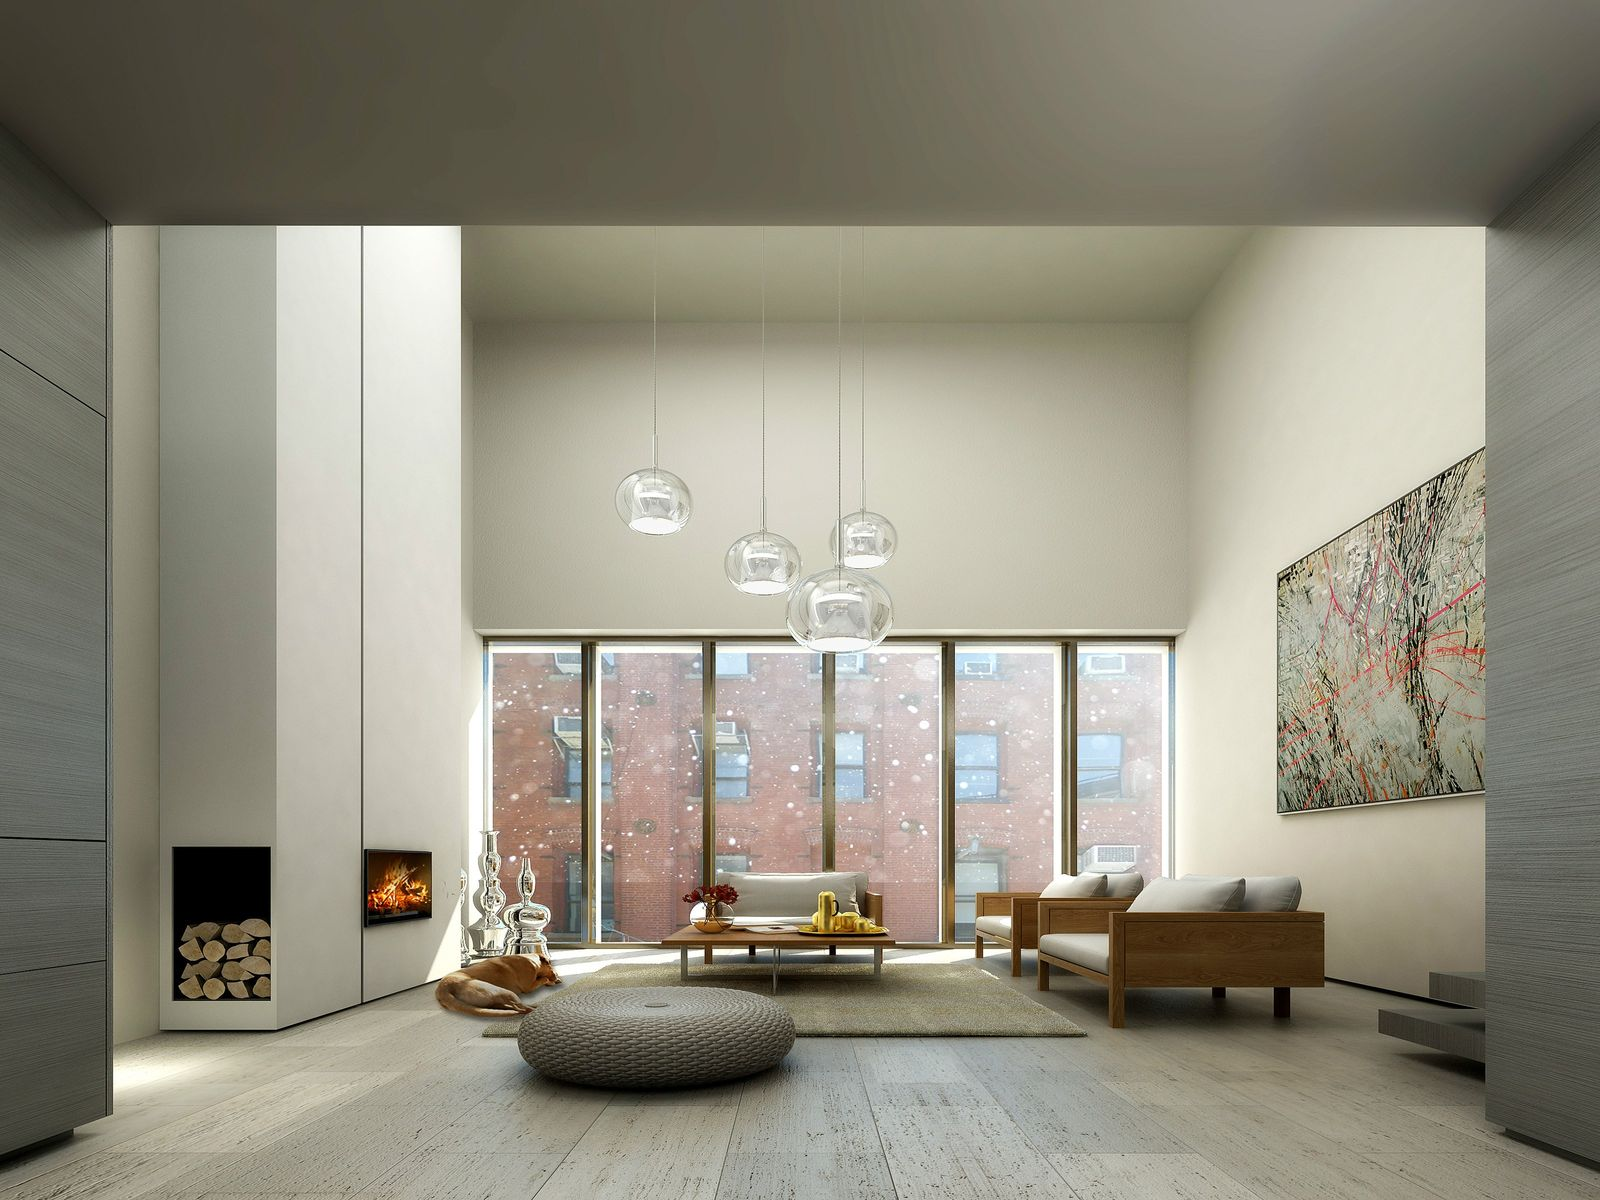 Dumbo Contemporary Townhouse w/ Parking, Brooklyn NY Townhouse - New York City Real Estate